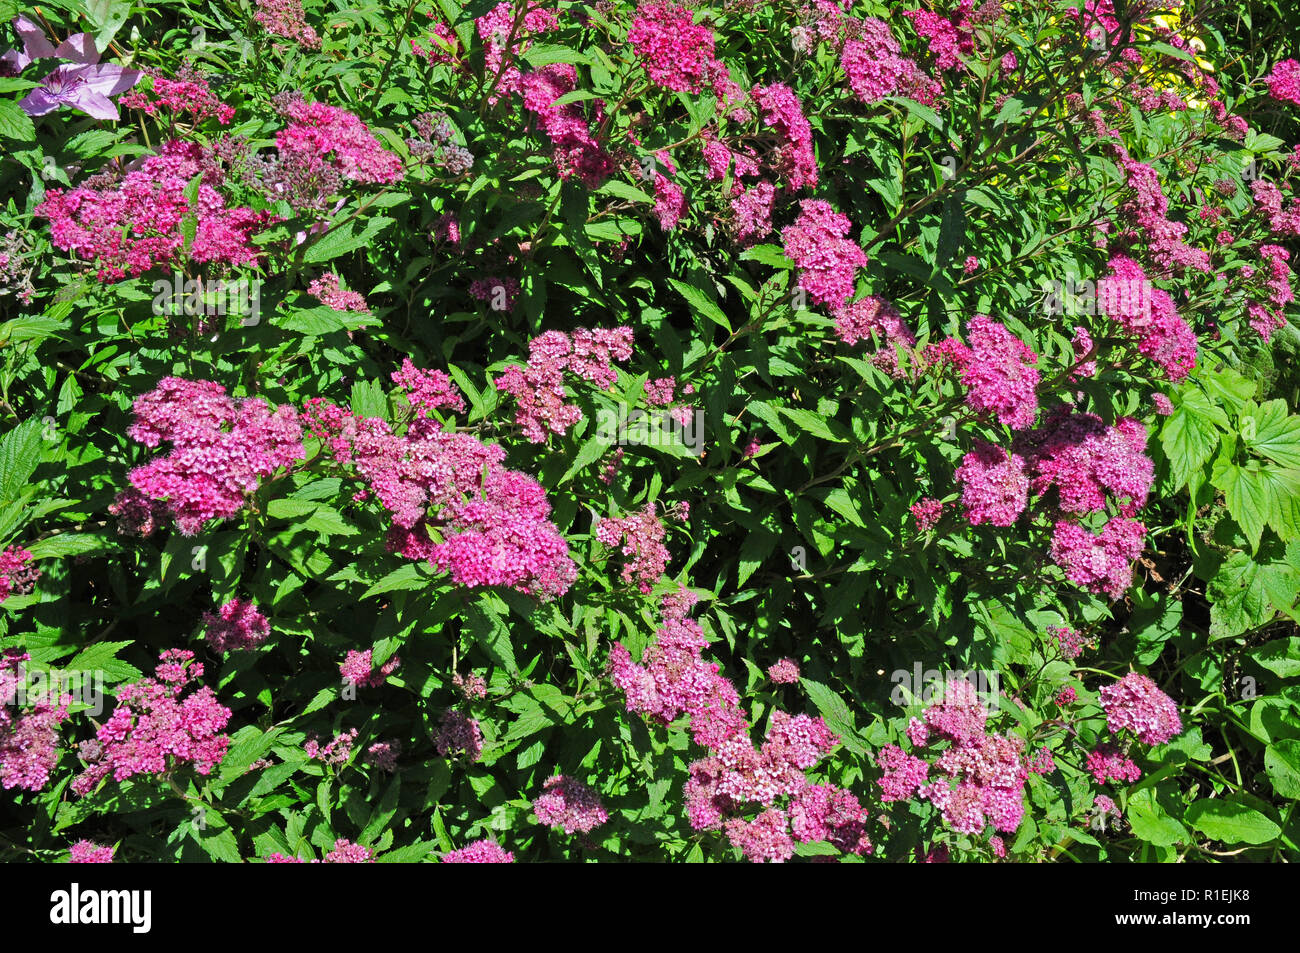 Deciduous shrub, Spirea Anthony Waterer in bloom. - Stock Image